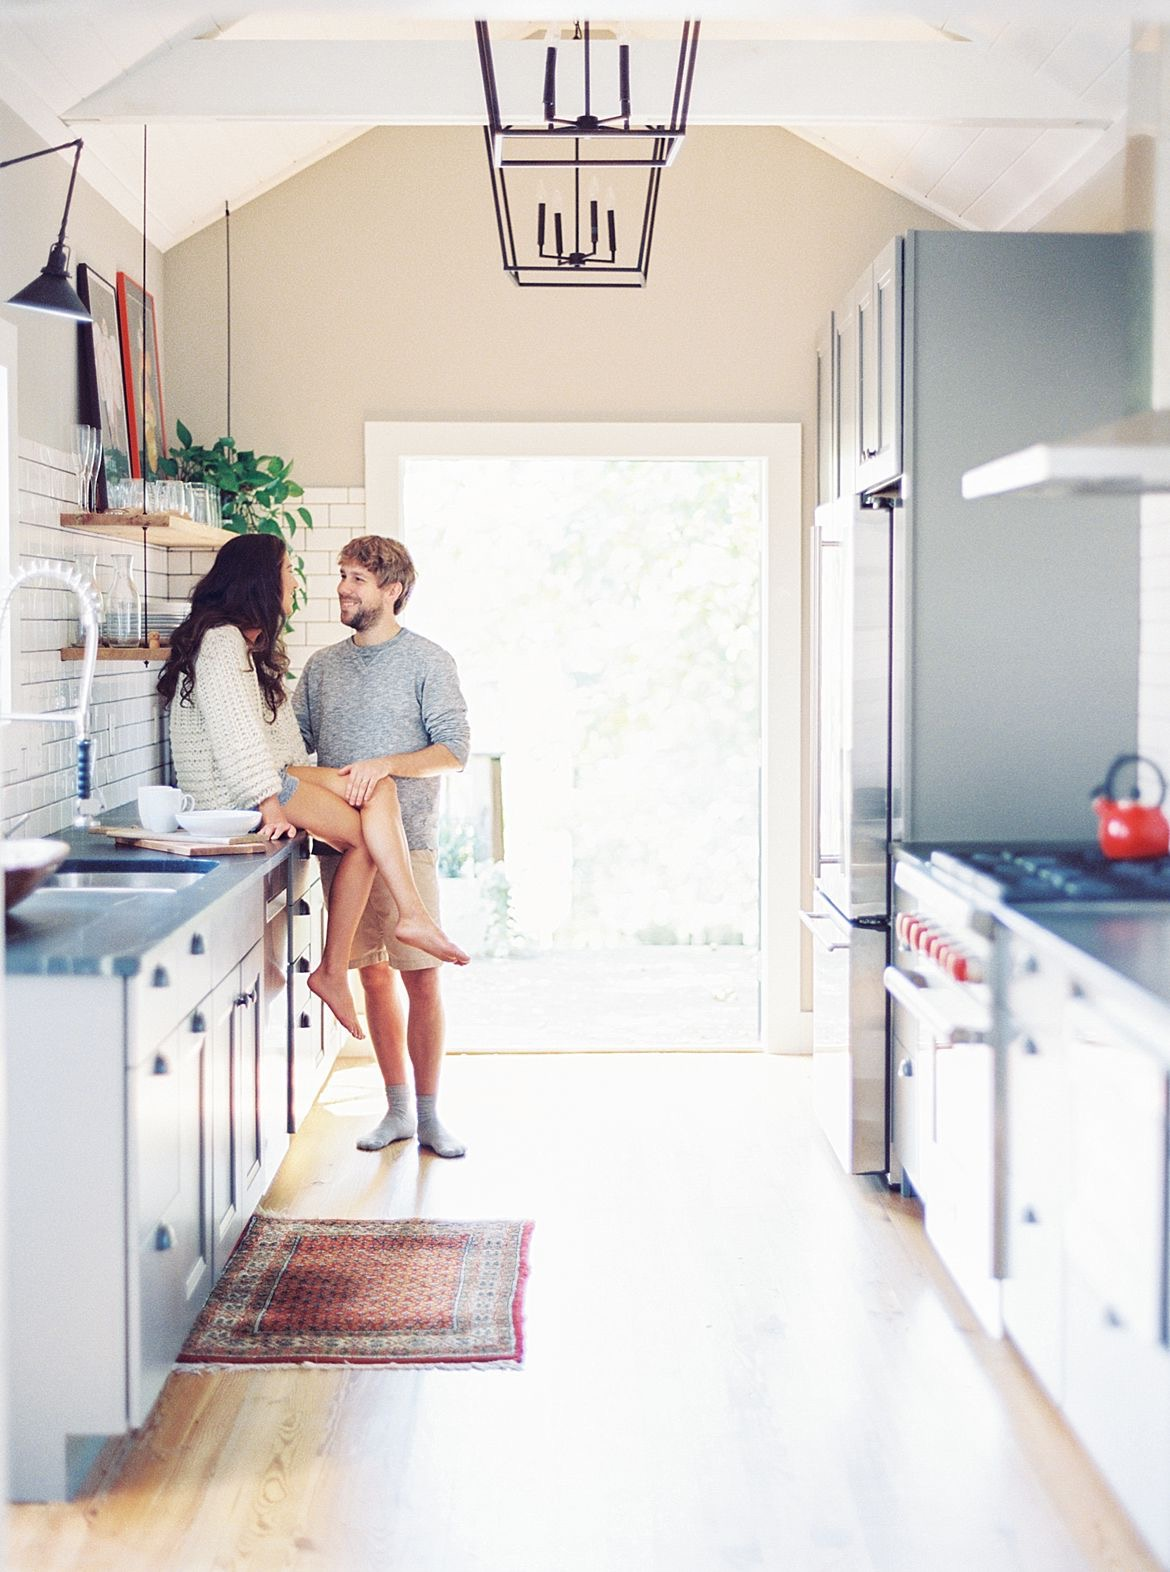 Couples Lifestyle Session Inspiration